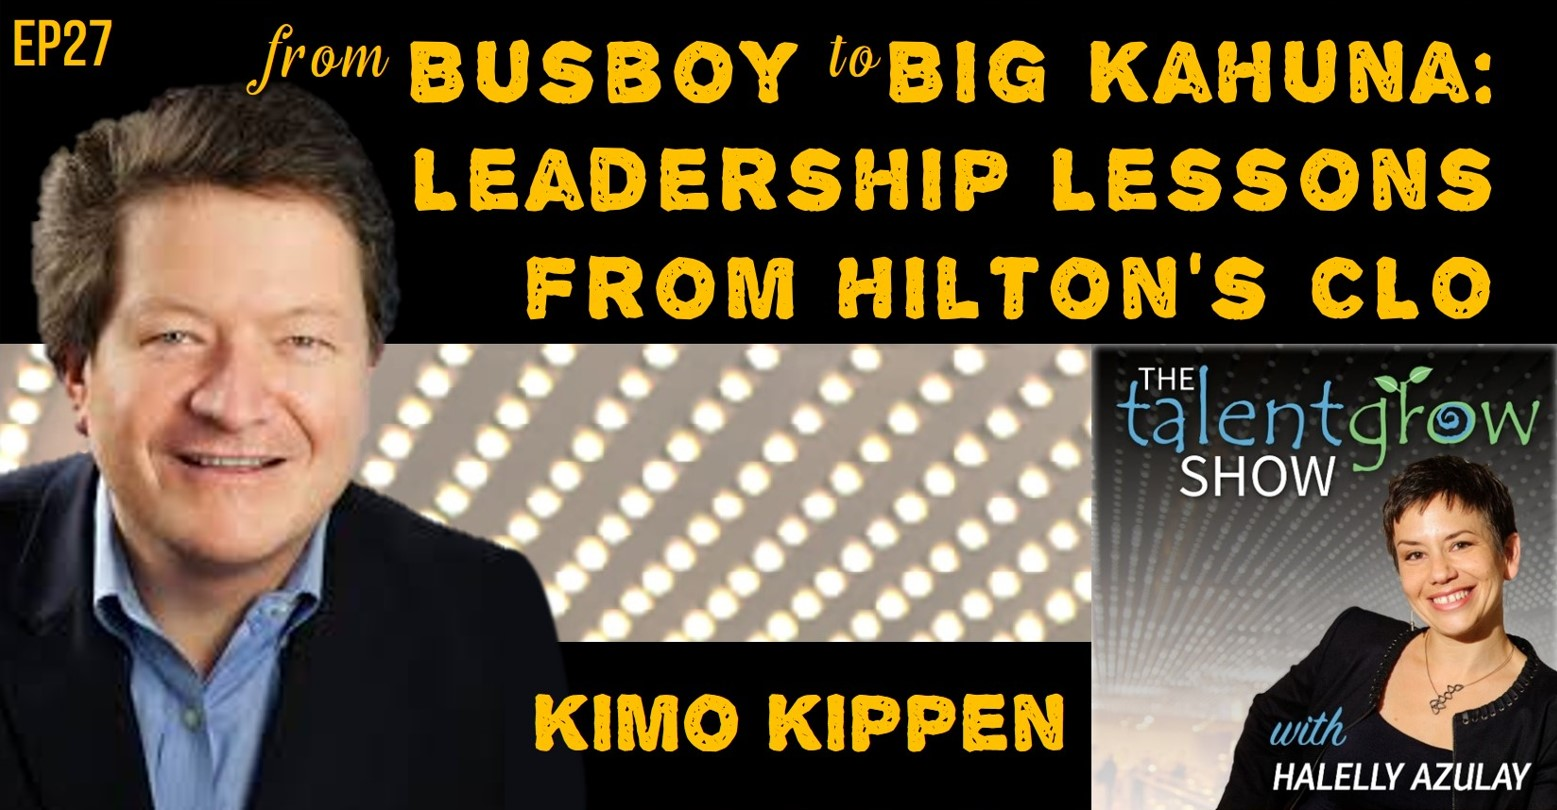 TalentGrow Show ep027 from Busboy to Big Kahuna Leadership Lessons from Hilton's CLO Kimo Kippen